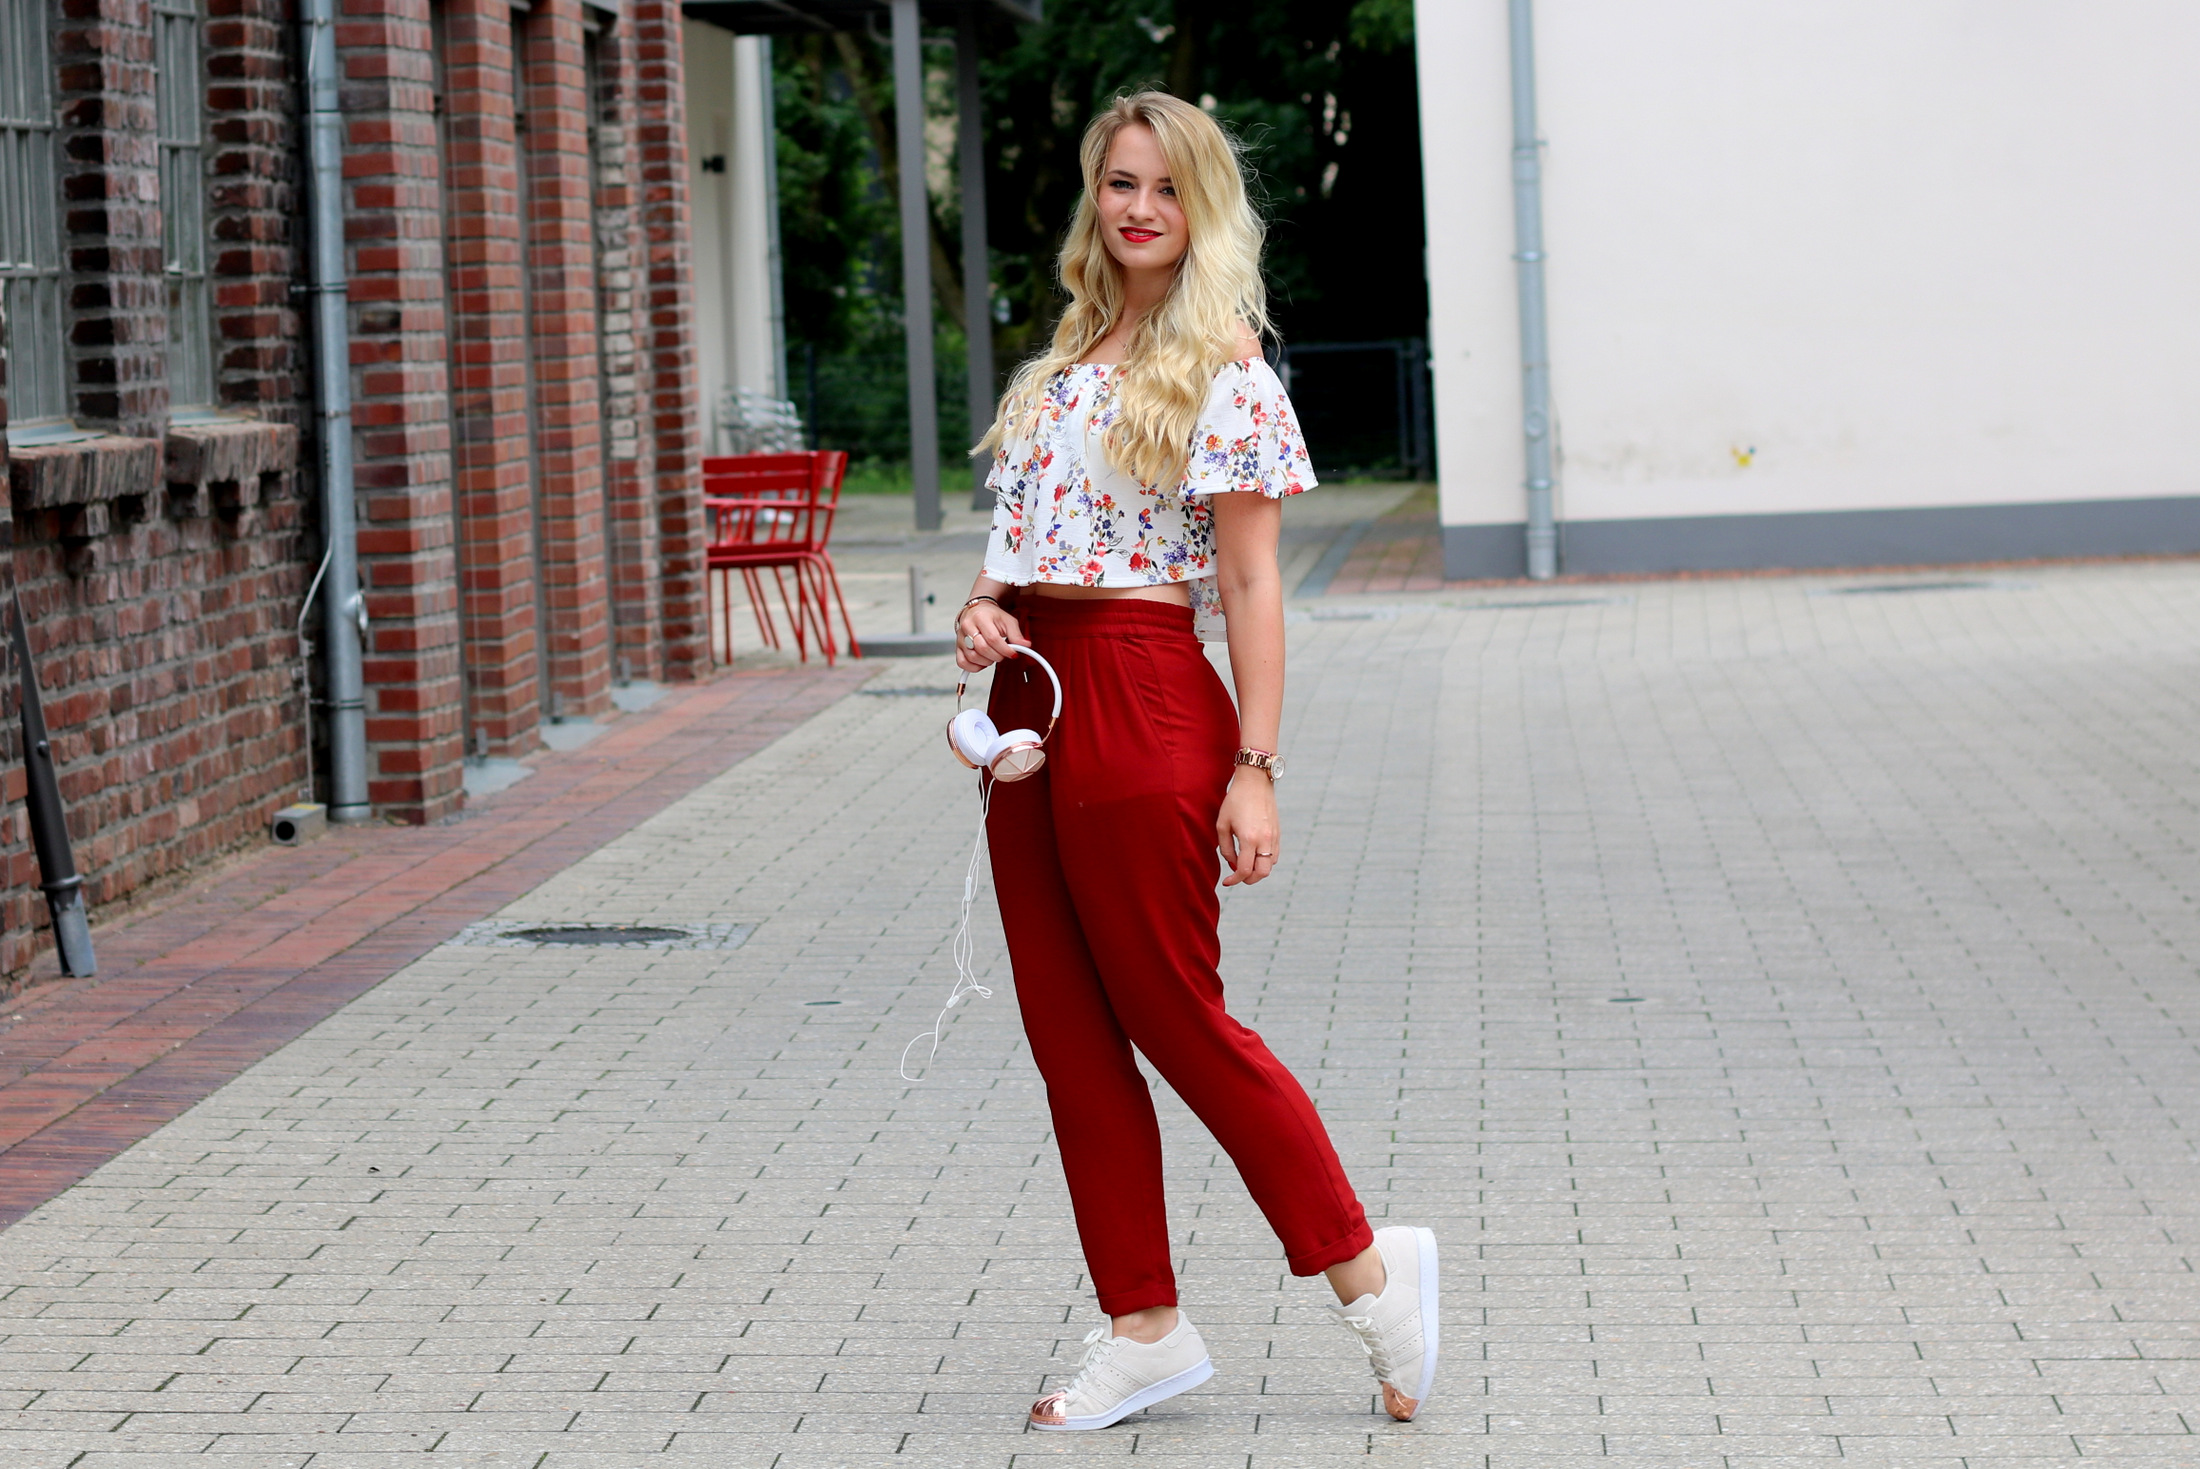 frends-headphones-kopfhörer-audio-musik-music-outfit-summer-early-look-zara-mrsbrightside (2)